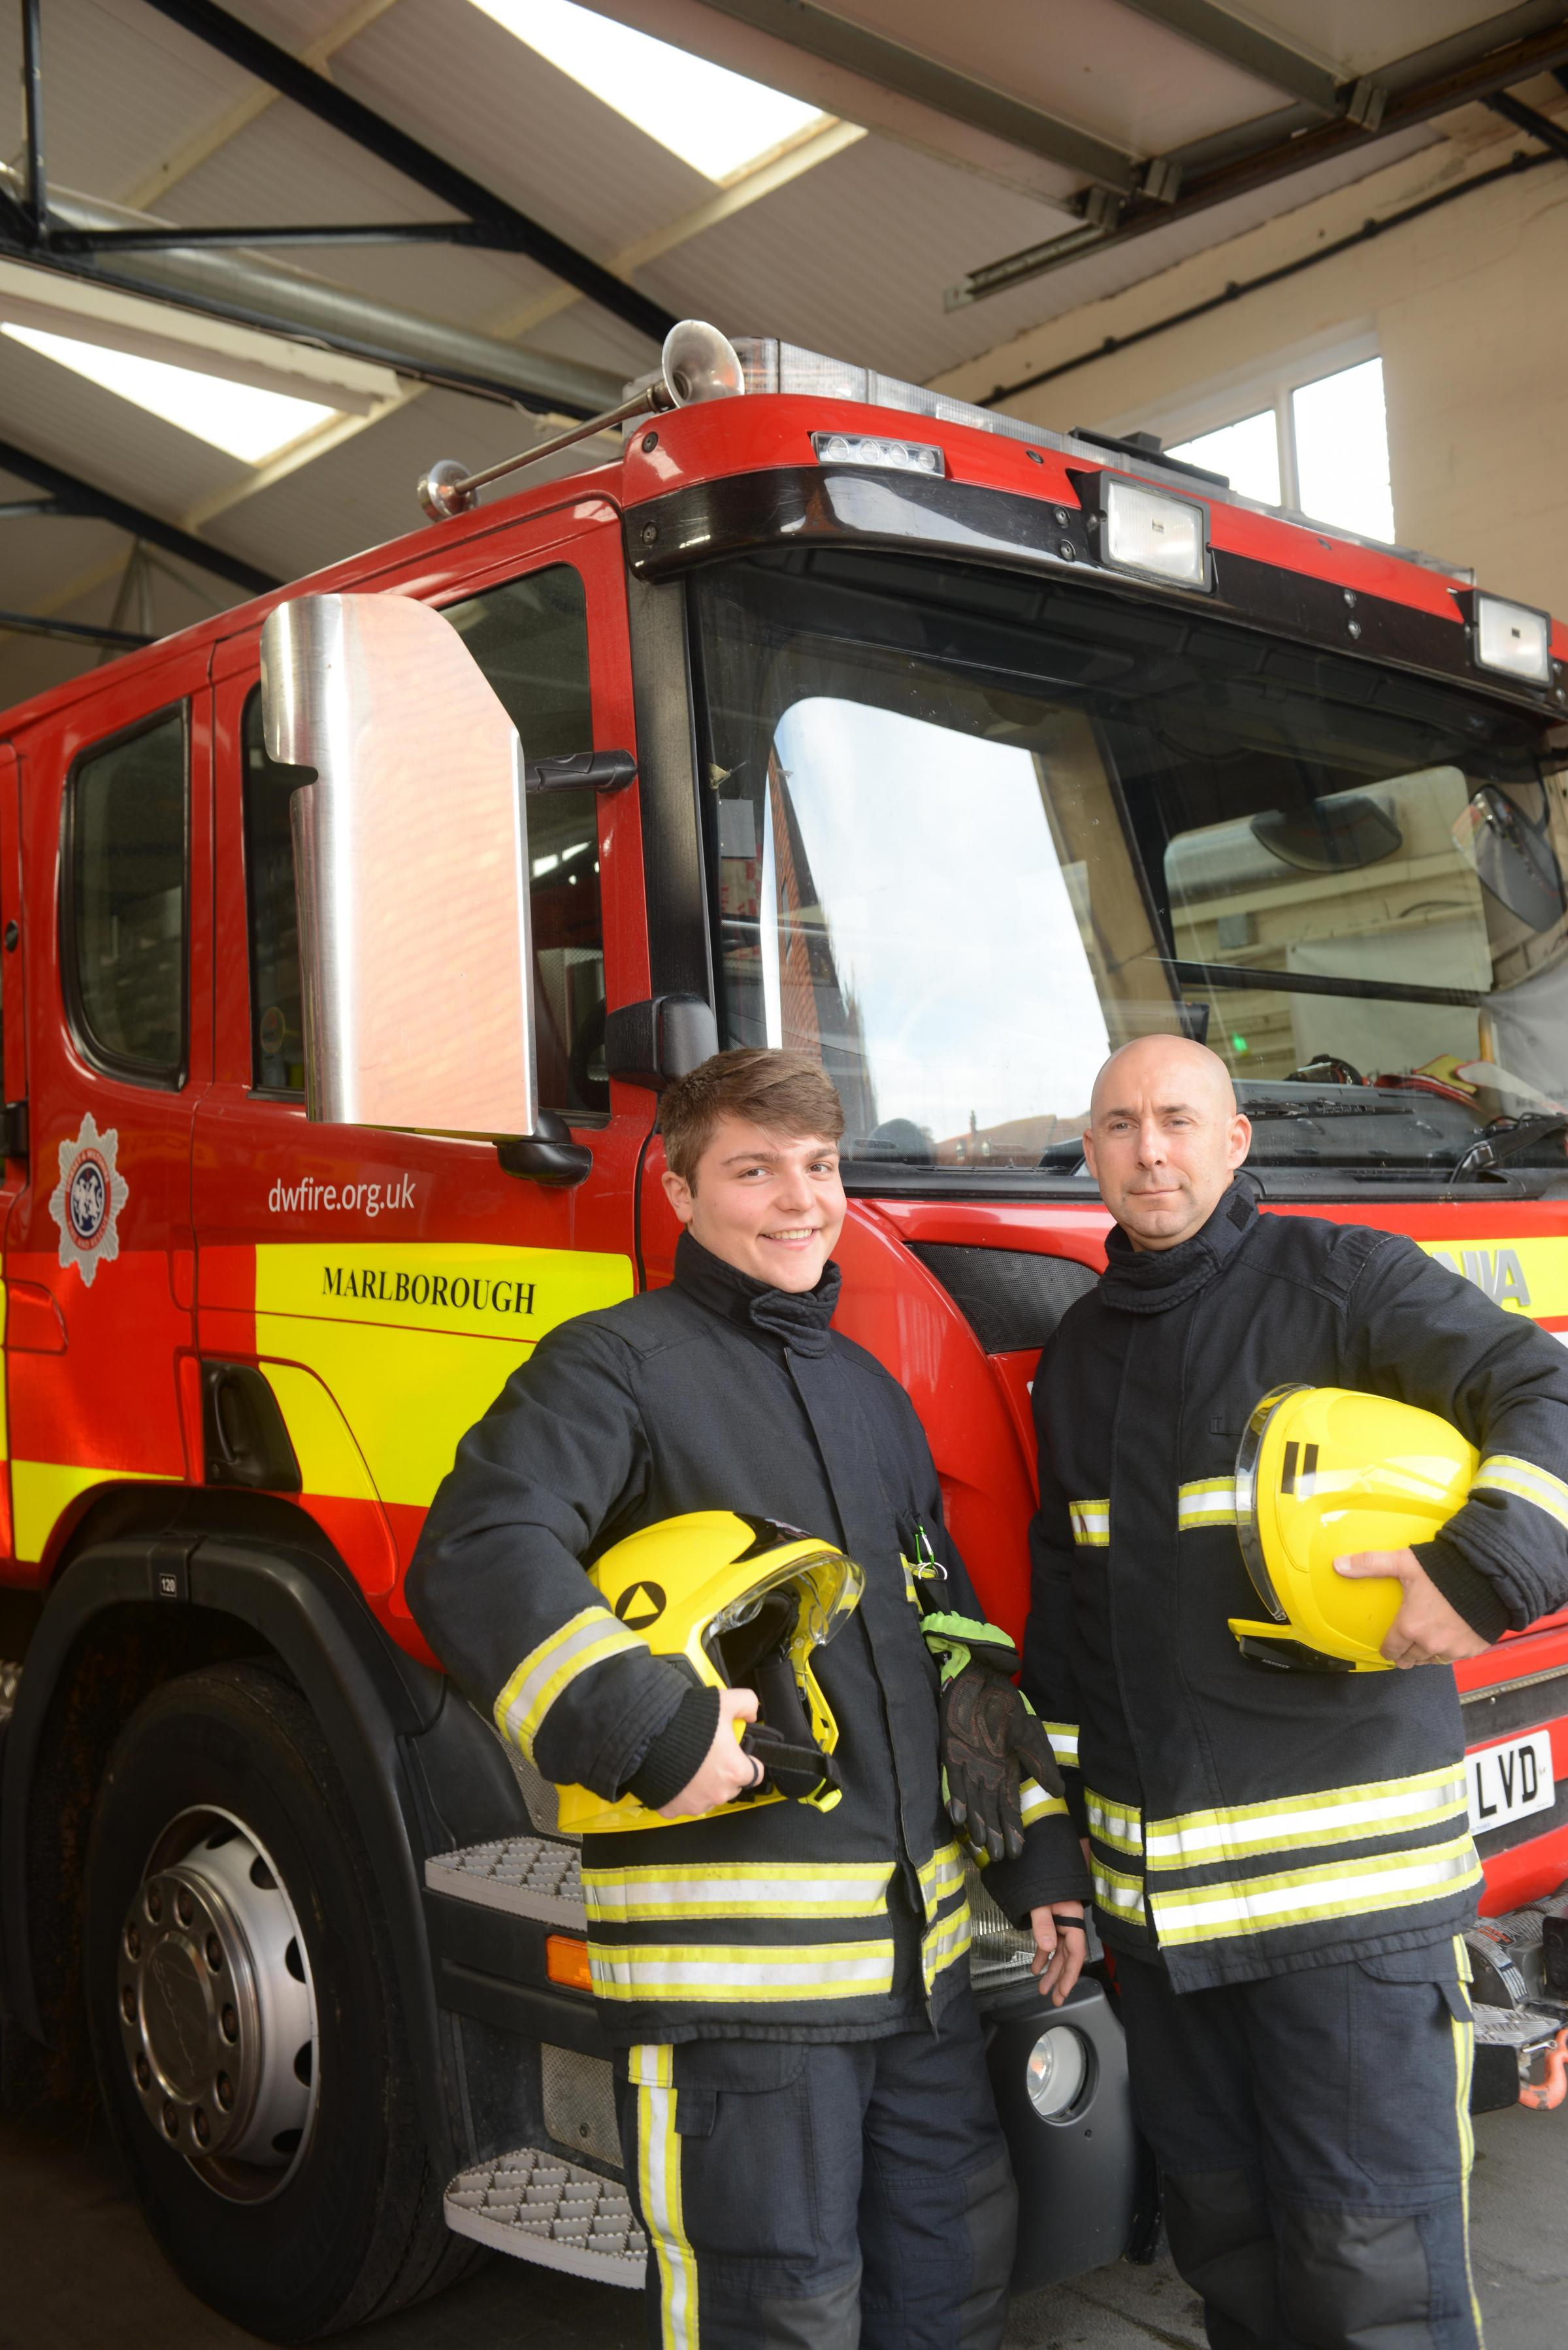 L-r firefighter Sam Flippance and crew mgr Mark Braithwaite. Marlborough fire station recruiting retainers. Photo: Siobhan Boyle SMB2204/4.